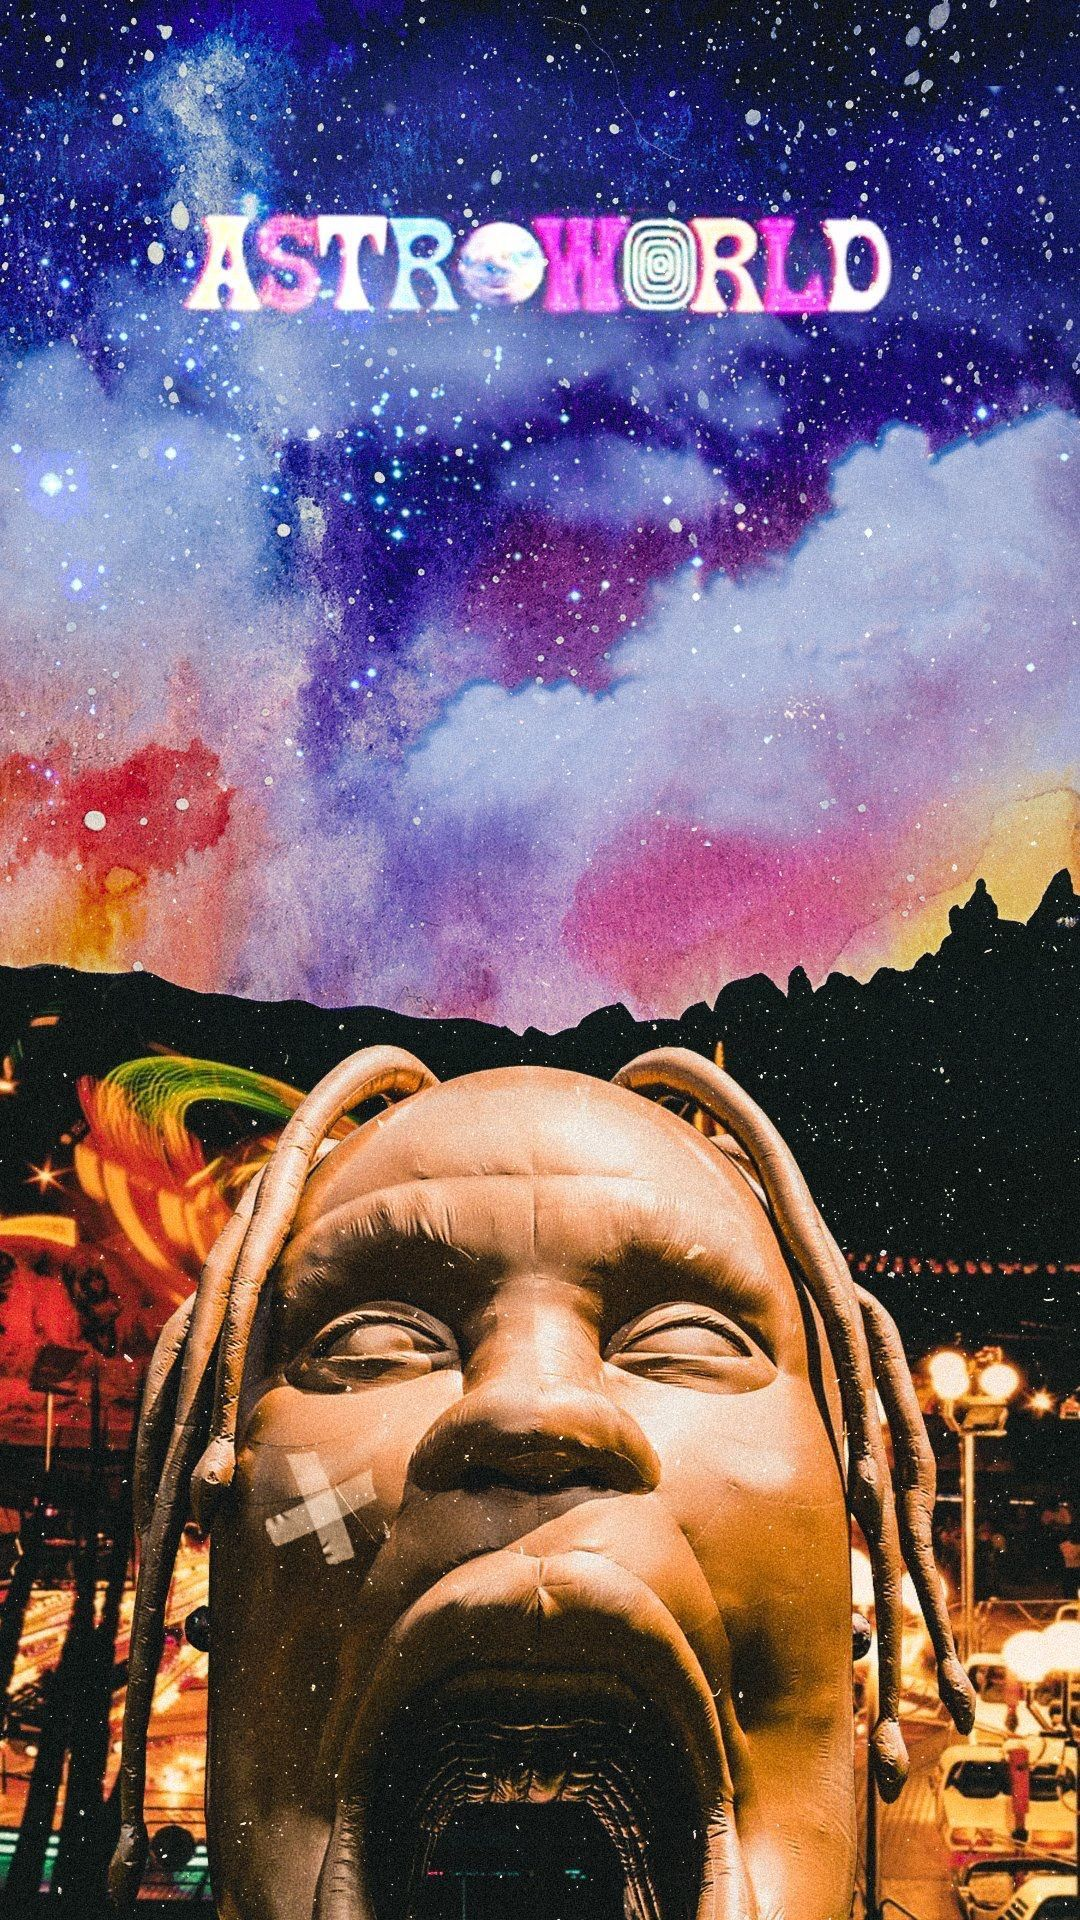 Astroworld Wallpaper Iphone 8 Plus Androidfast25 Design In 2020 Travis Scott Iphone Wallpaper Travis Scott Wallpapers Travis Scott